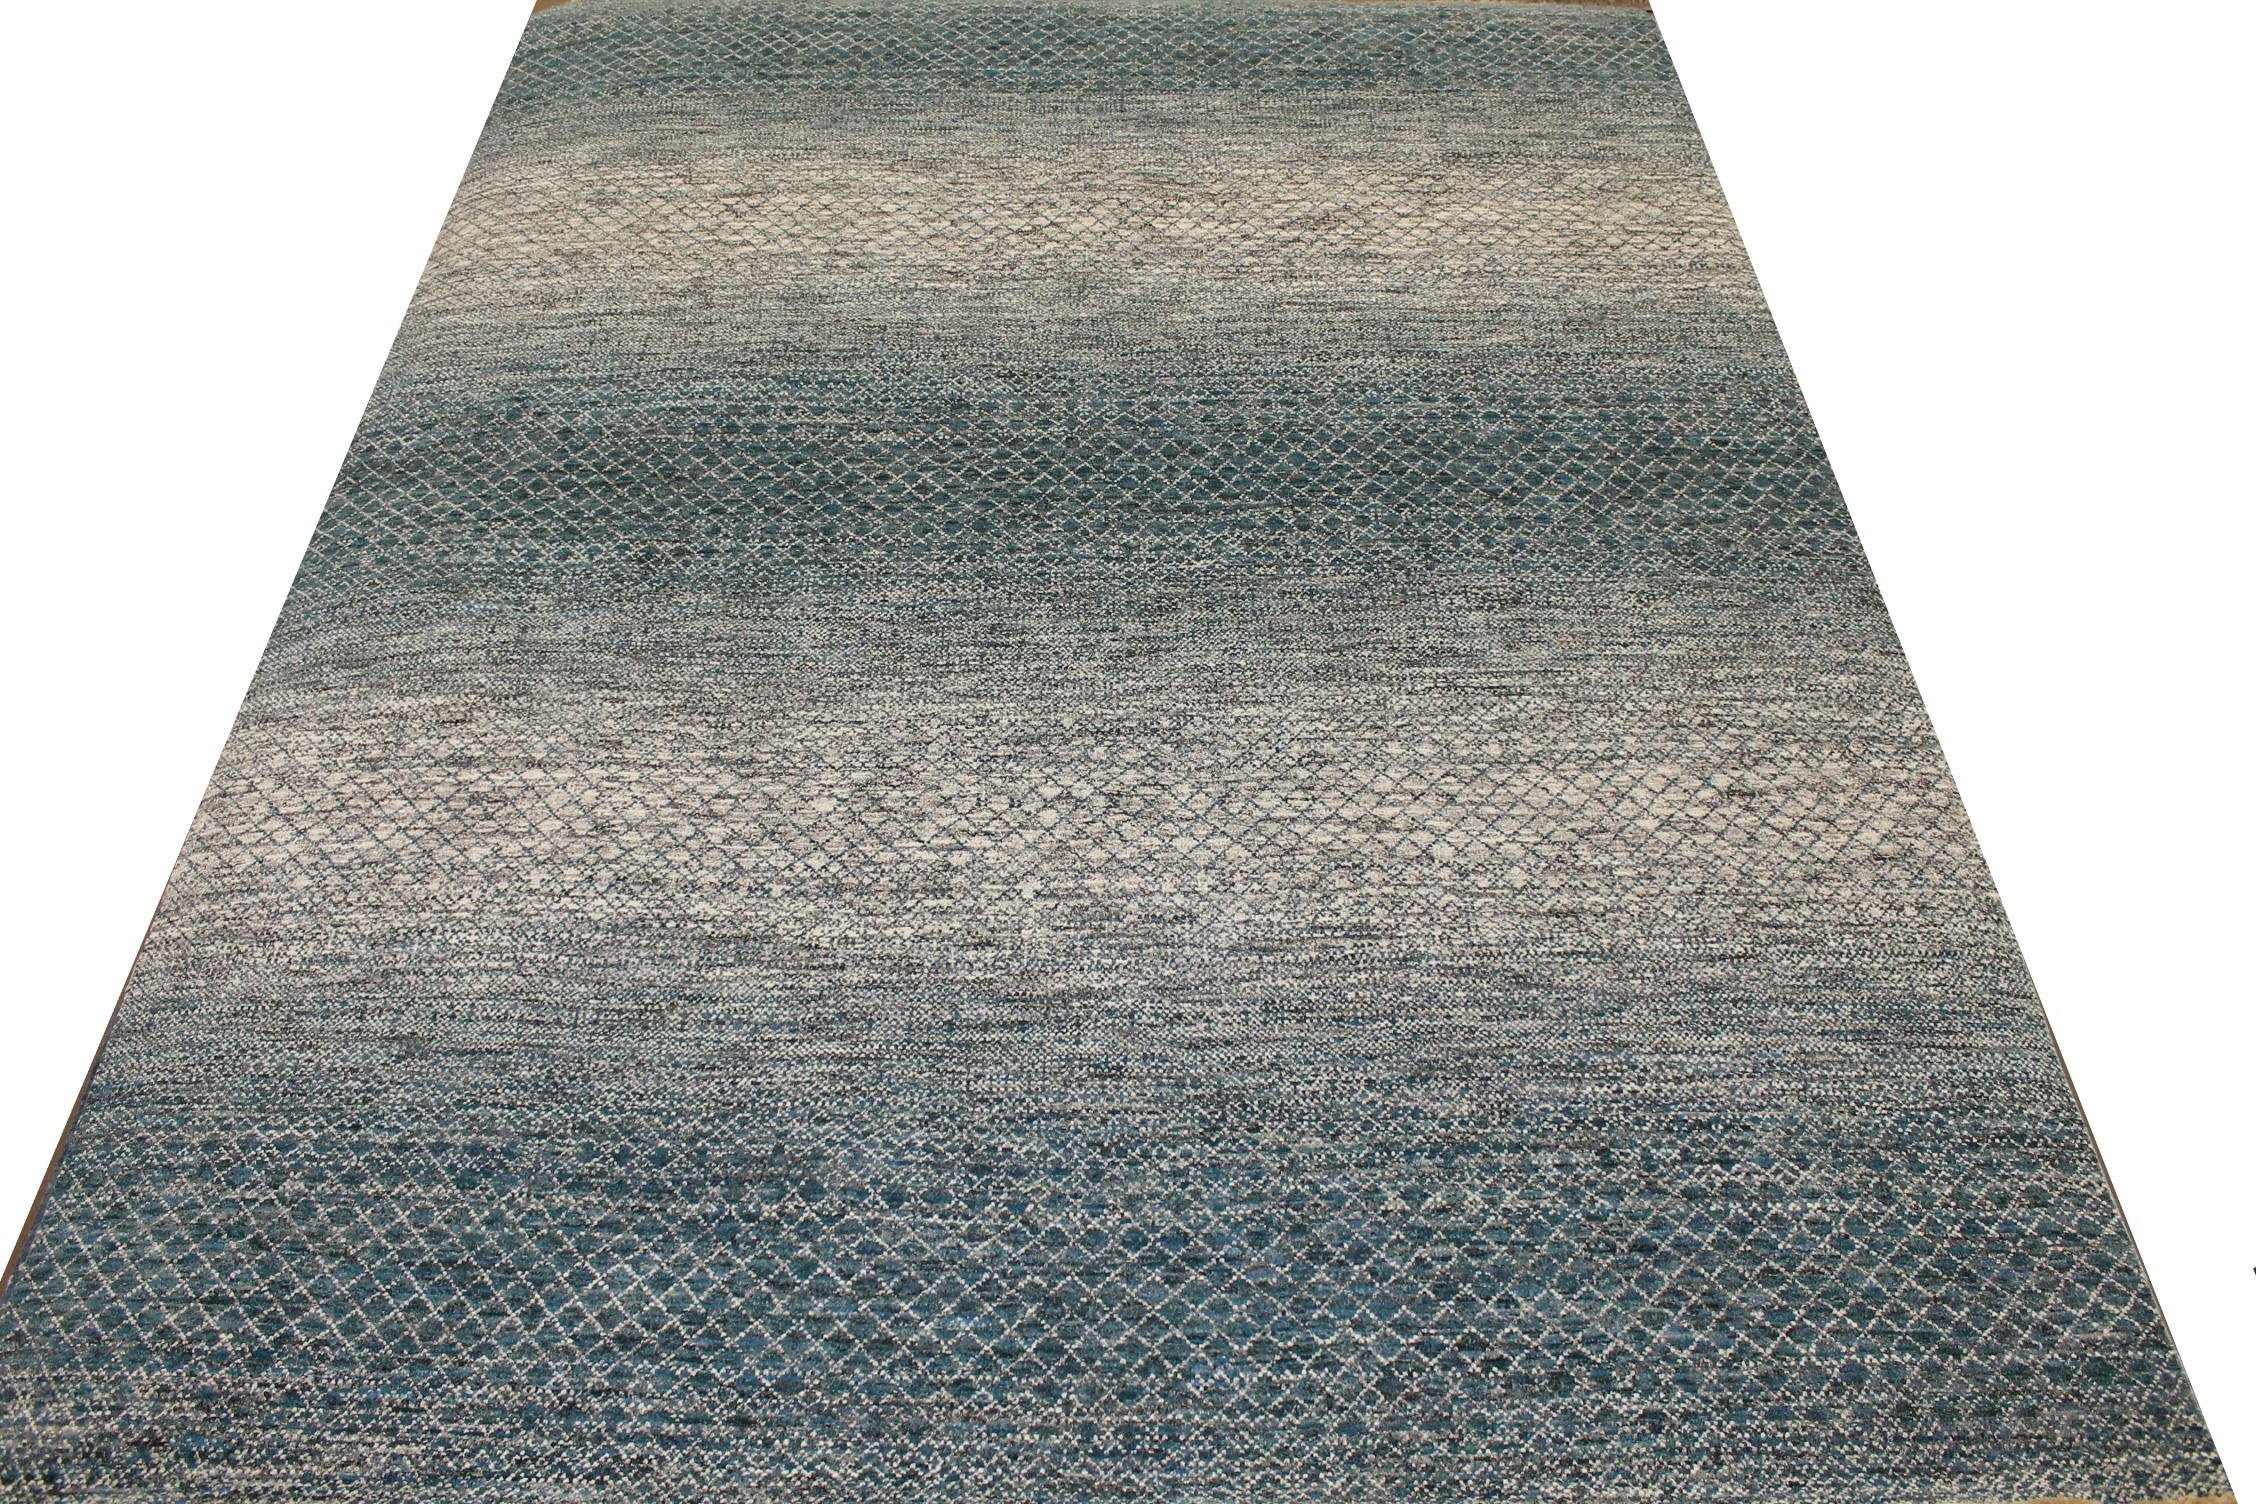 9x12 Casual Hand Knotted Wool Area Rug - MR023400